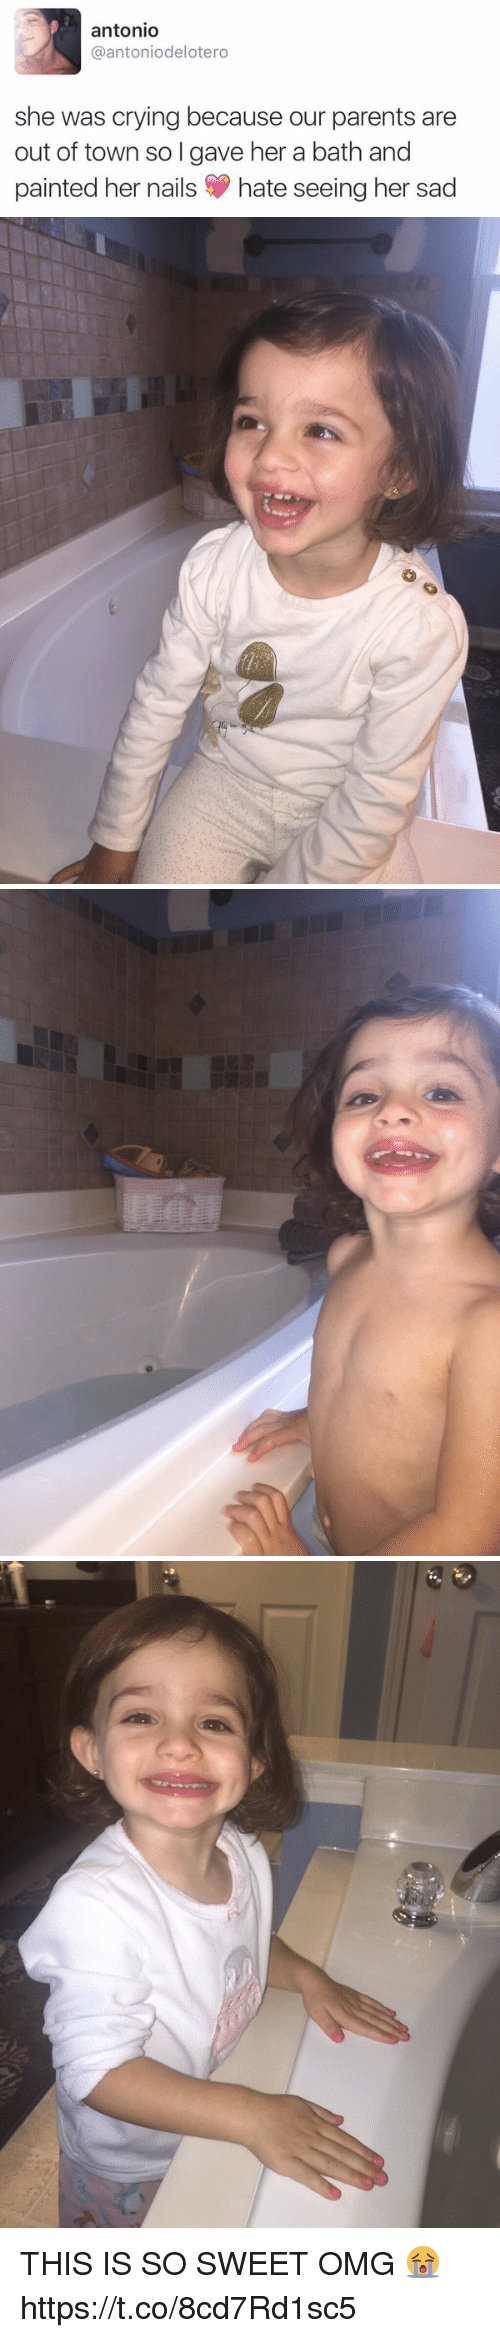 Crying, Omg, and Parents: antonio  Gaantoniodelotero  she was crying because our parents are  out of town so I gave her a bath and  painted her nails S hate seeing her sad   00 THIS IS SO SWEET OMG 😭 https://t.co/8cd7Rd1sc5